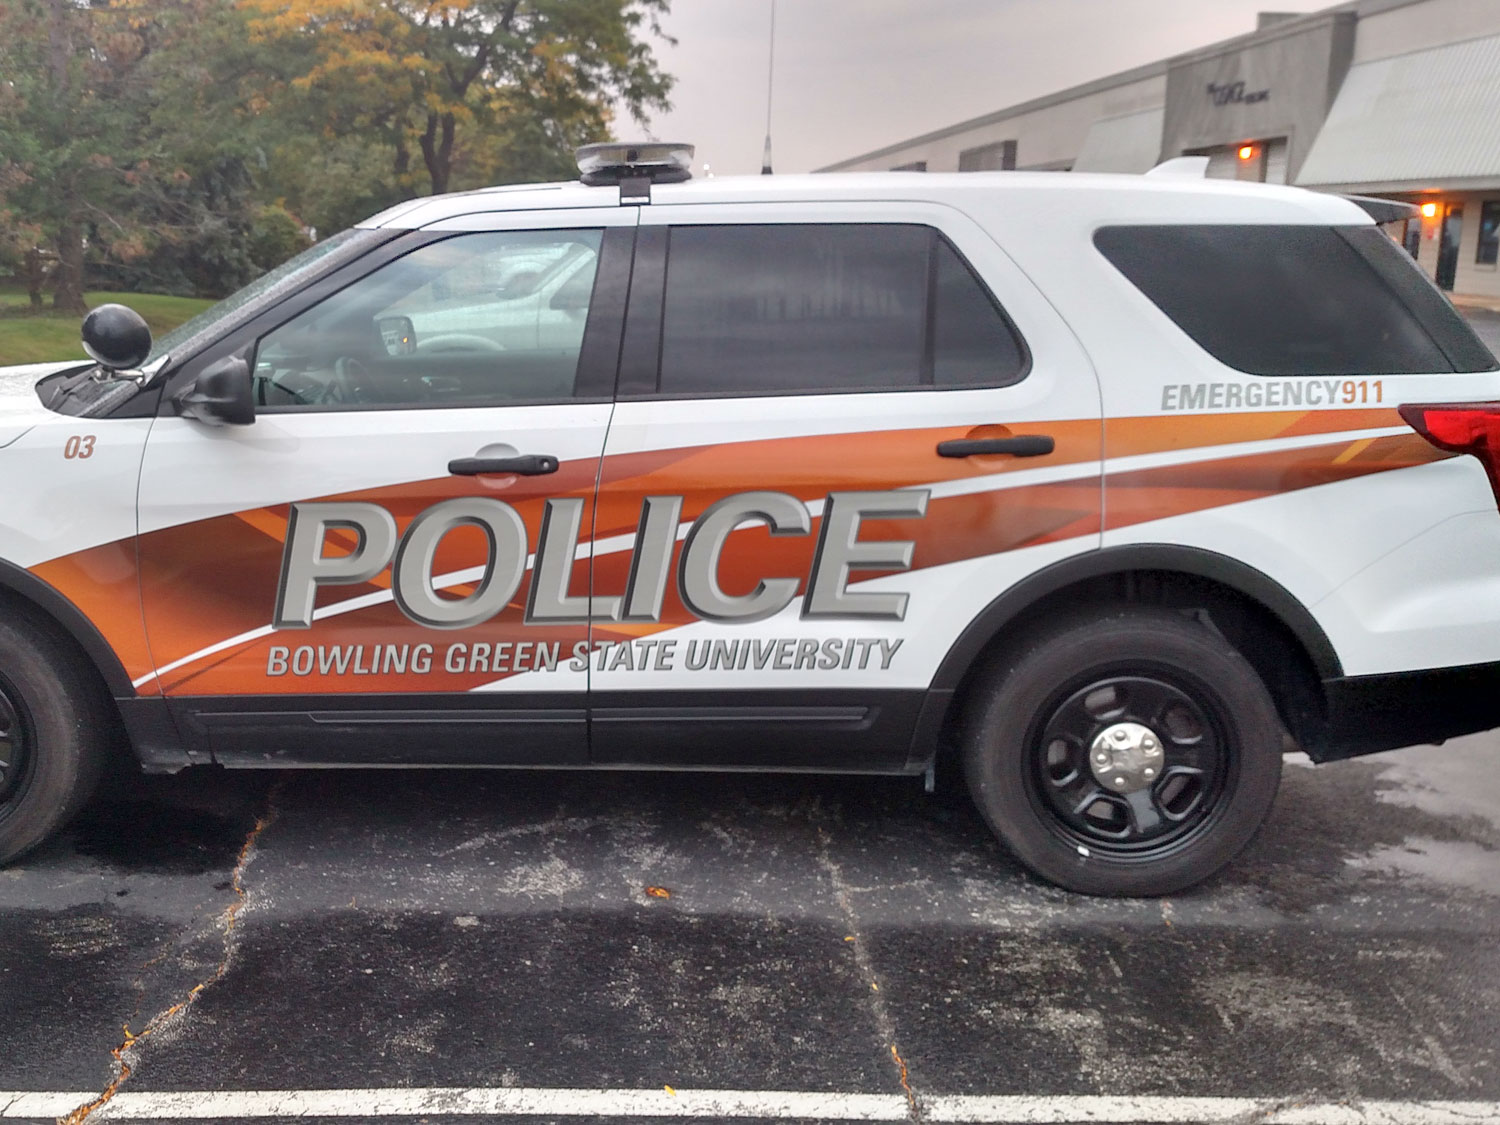 Bowling Green State University Campus Police Graphics